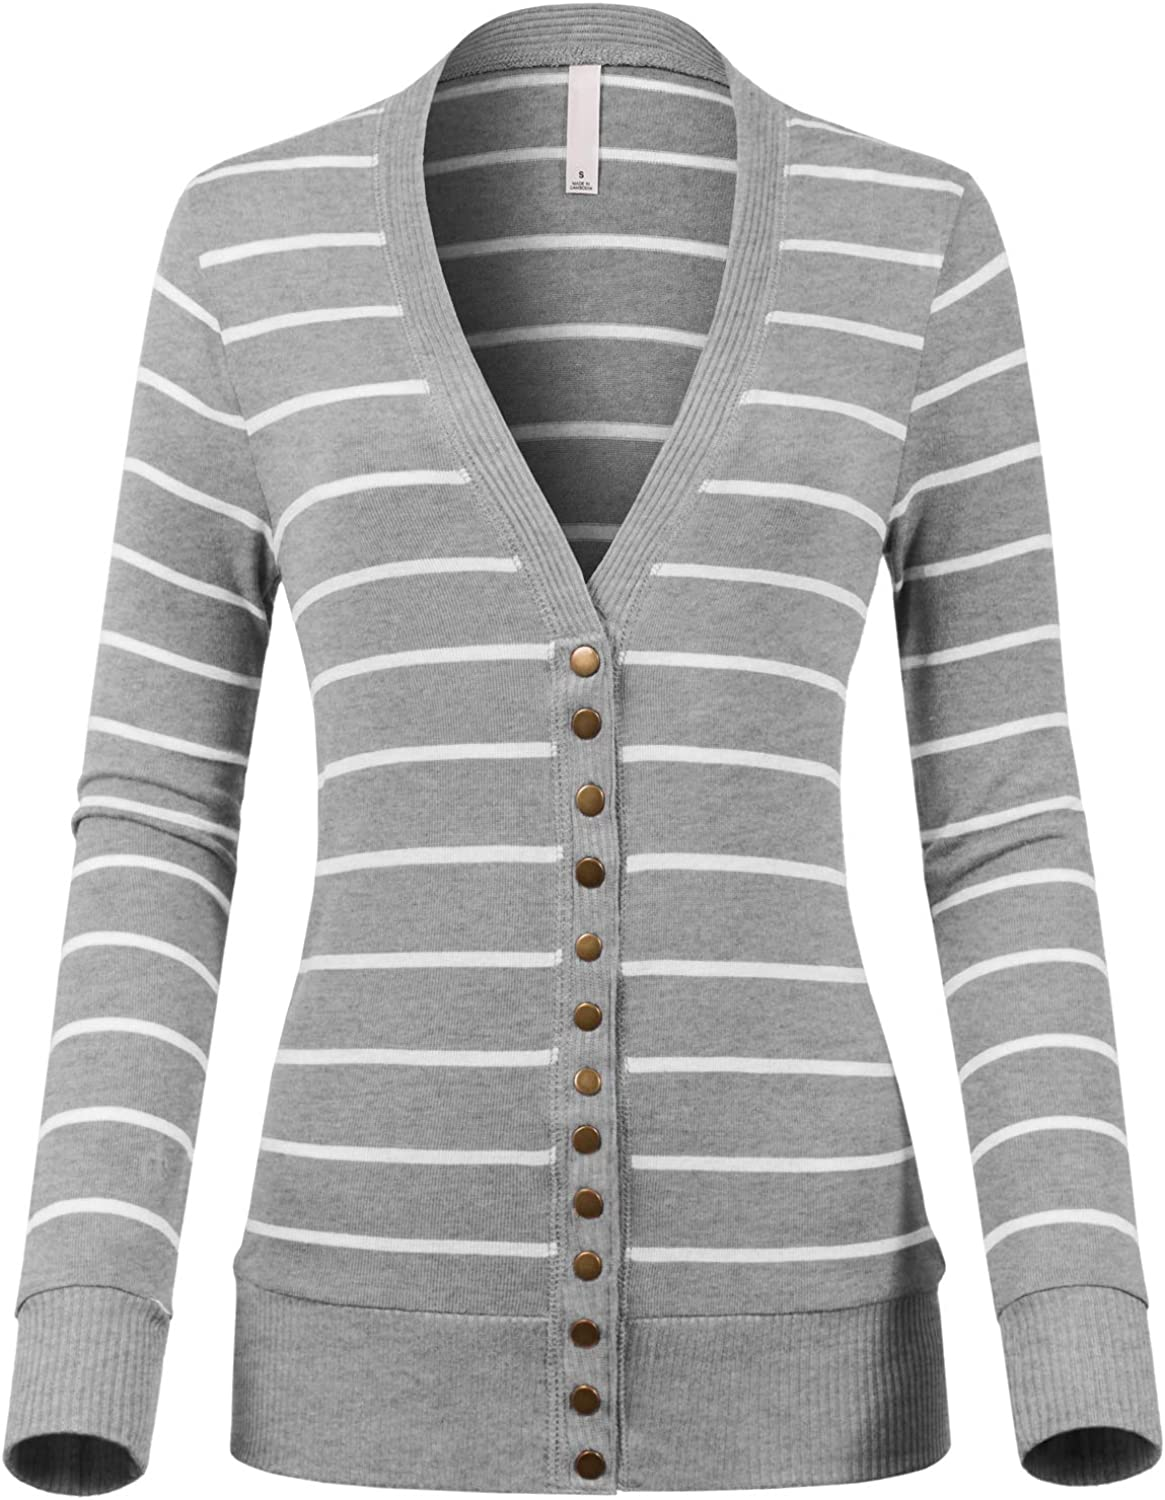 Design by Olivia Womens V-Neck Snap Button Down Long Sleeve Soft Basic Striped Knit Cardigan Sweater